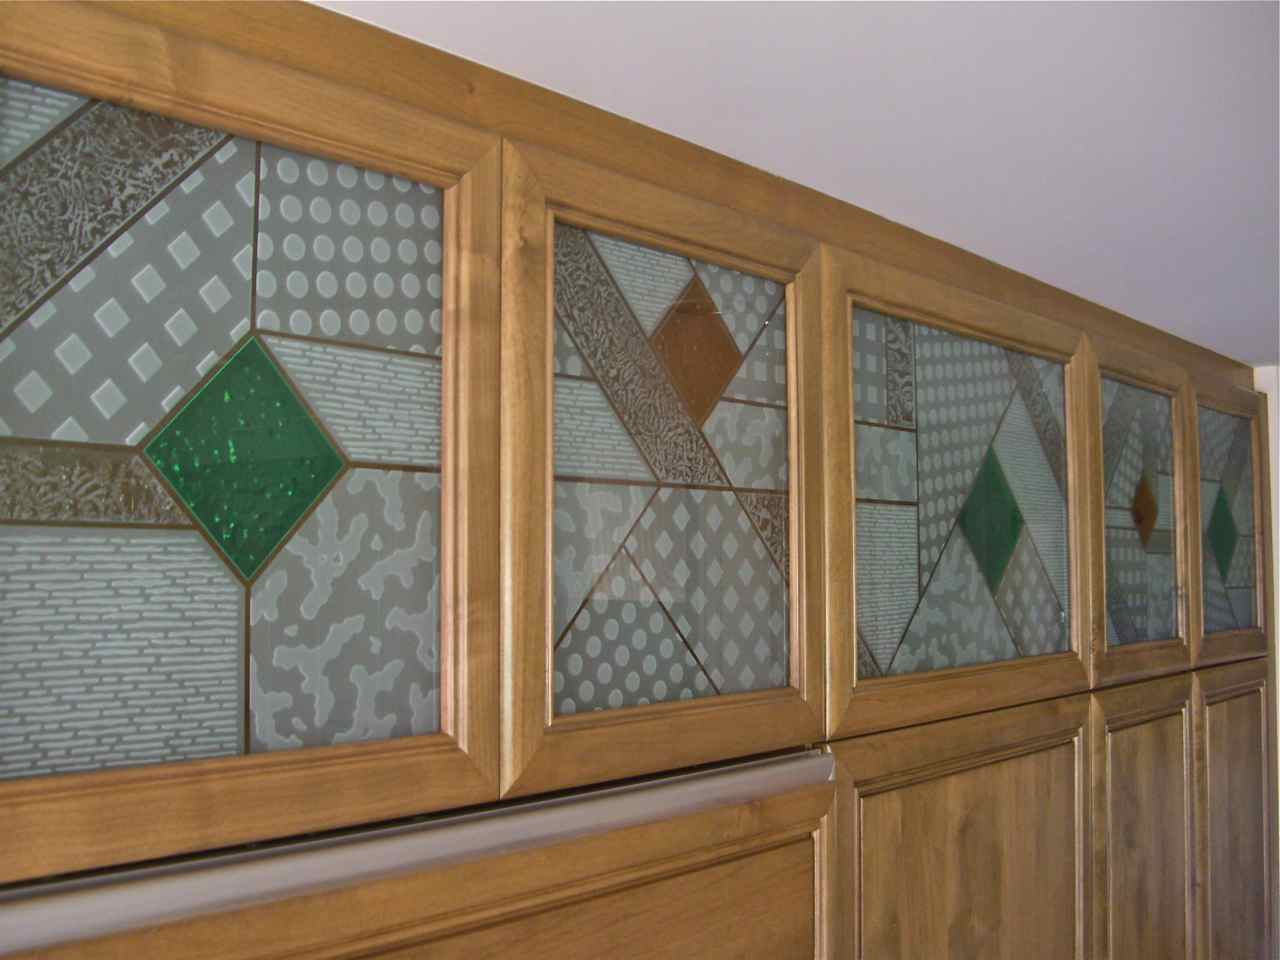 Geometric Designs Sans Soucie Art Glass